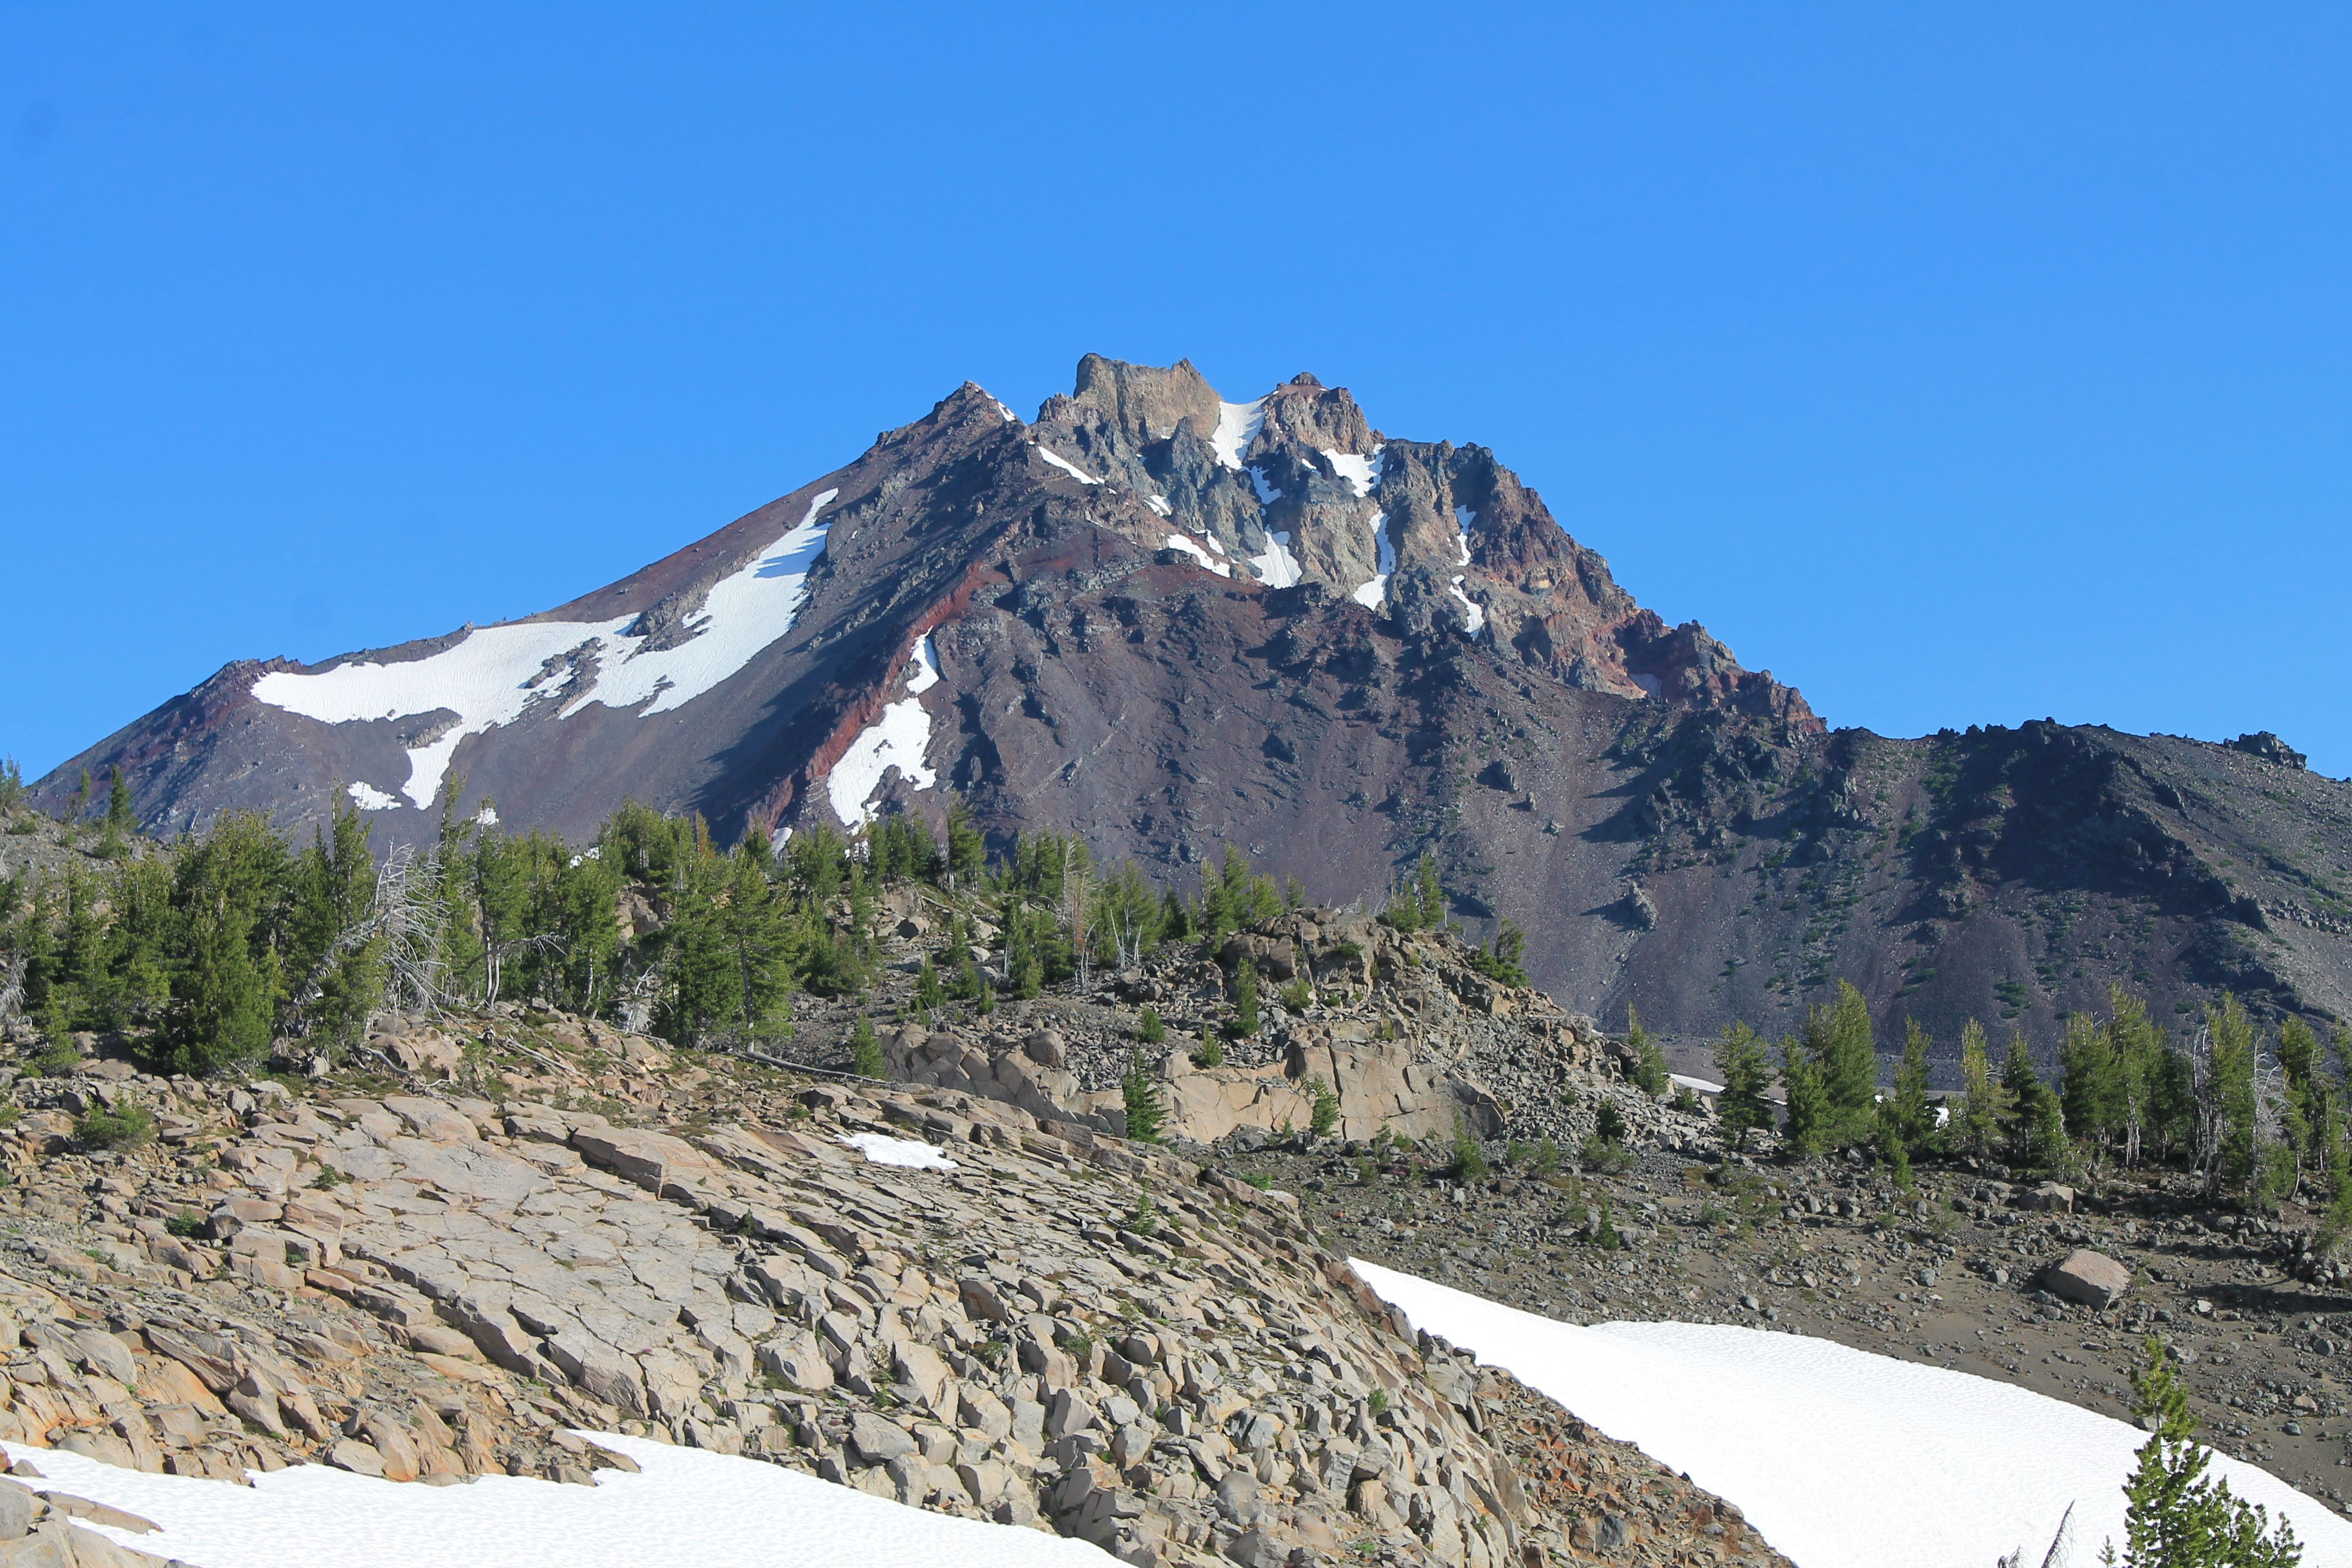 North Sister, ascended by Paul soloing on Sunday